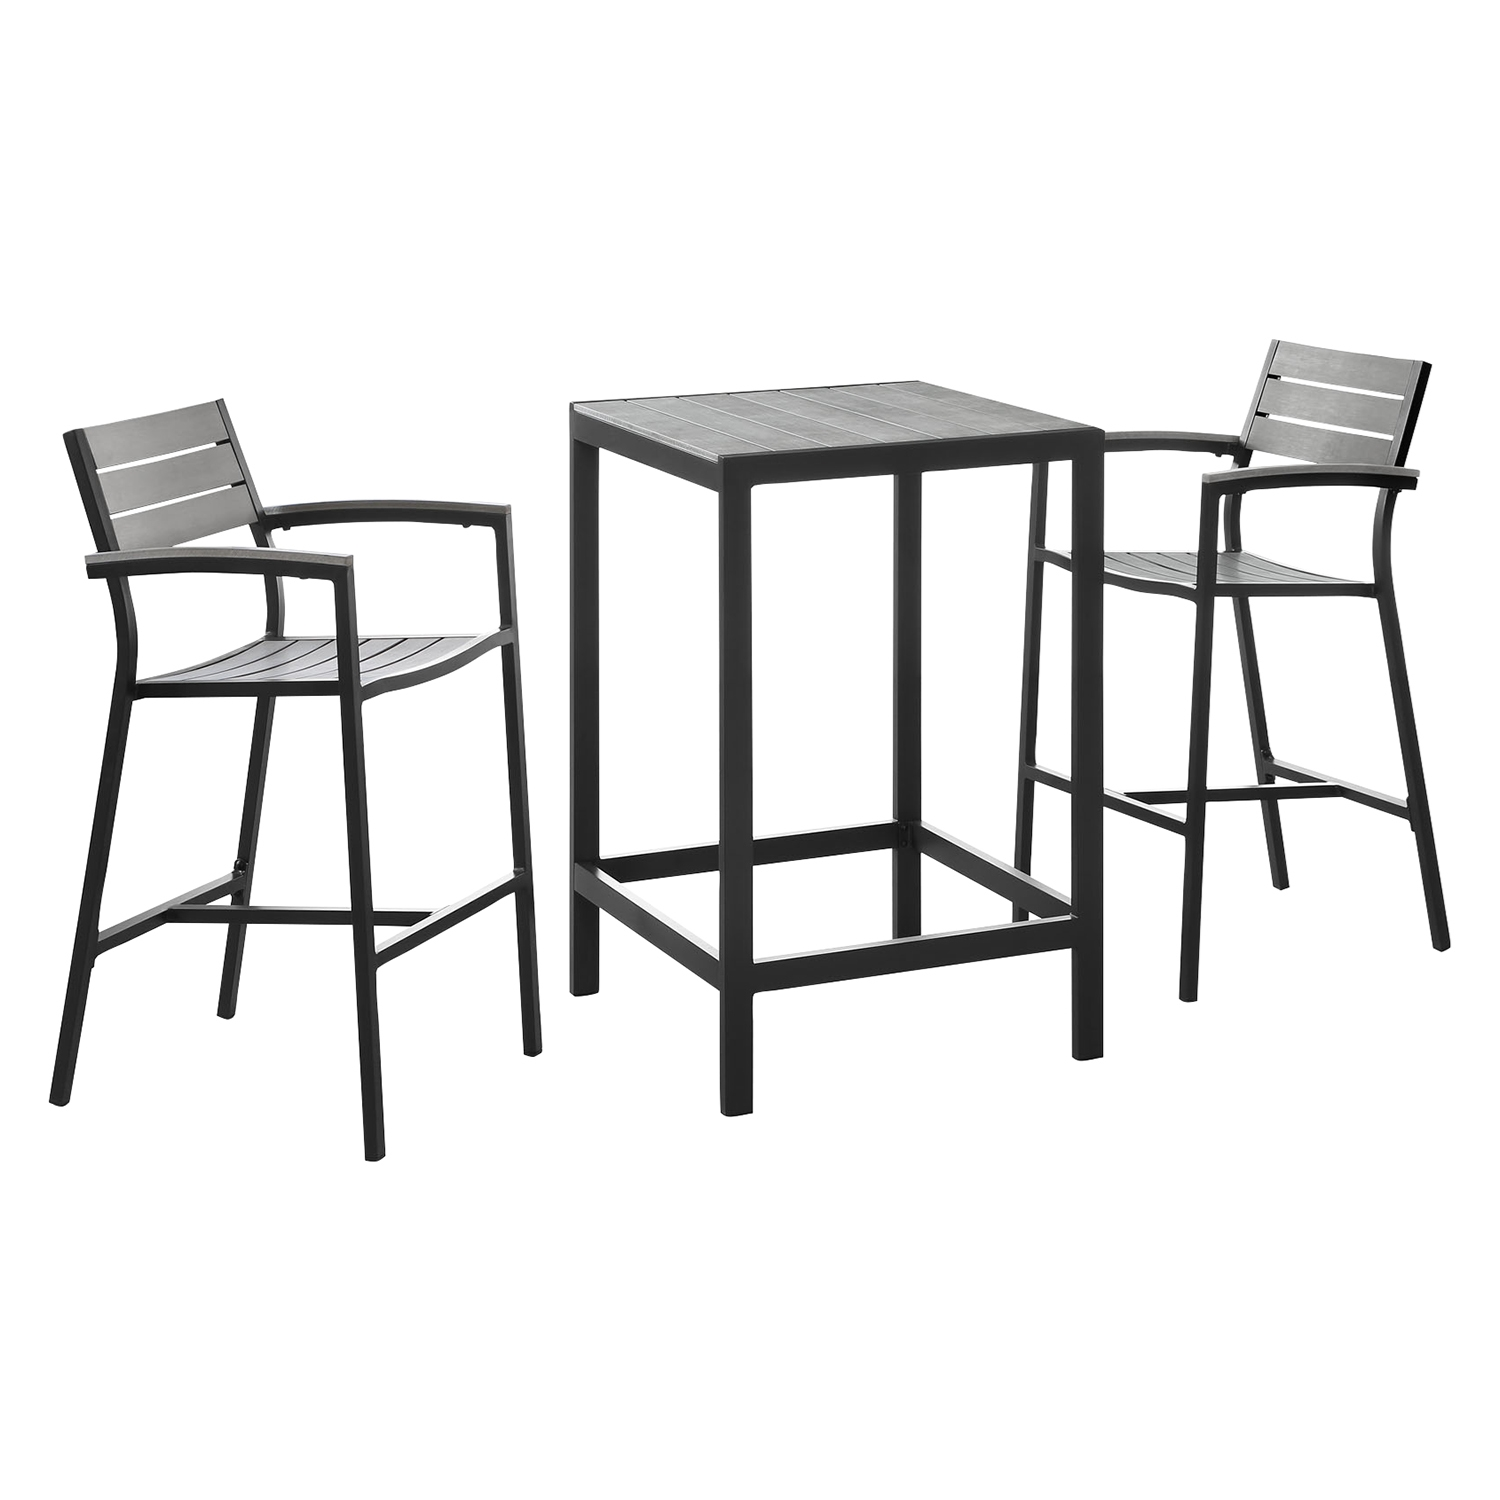 Maine 3 Pieces Outdoor Patio Set - Brown, Gray - EEI-1754-BRN-GRY-SET